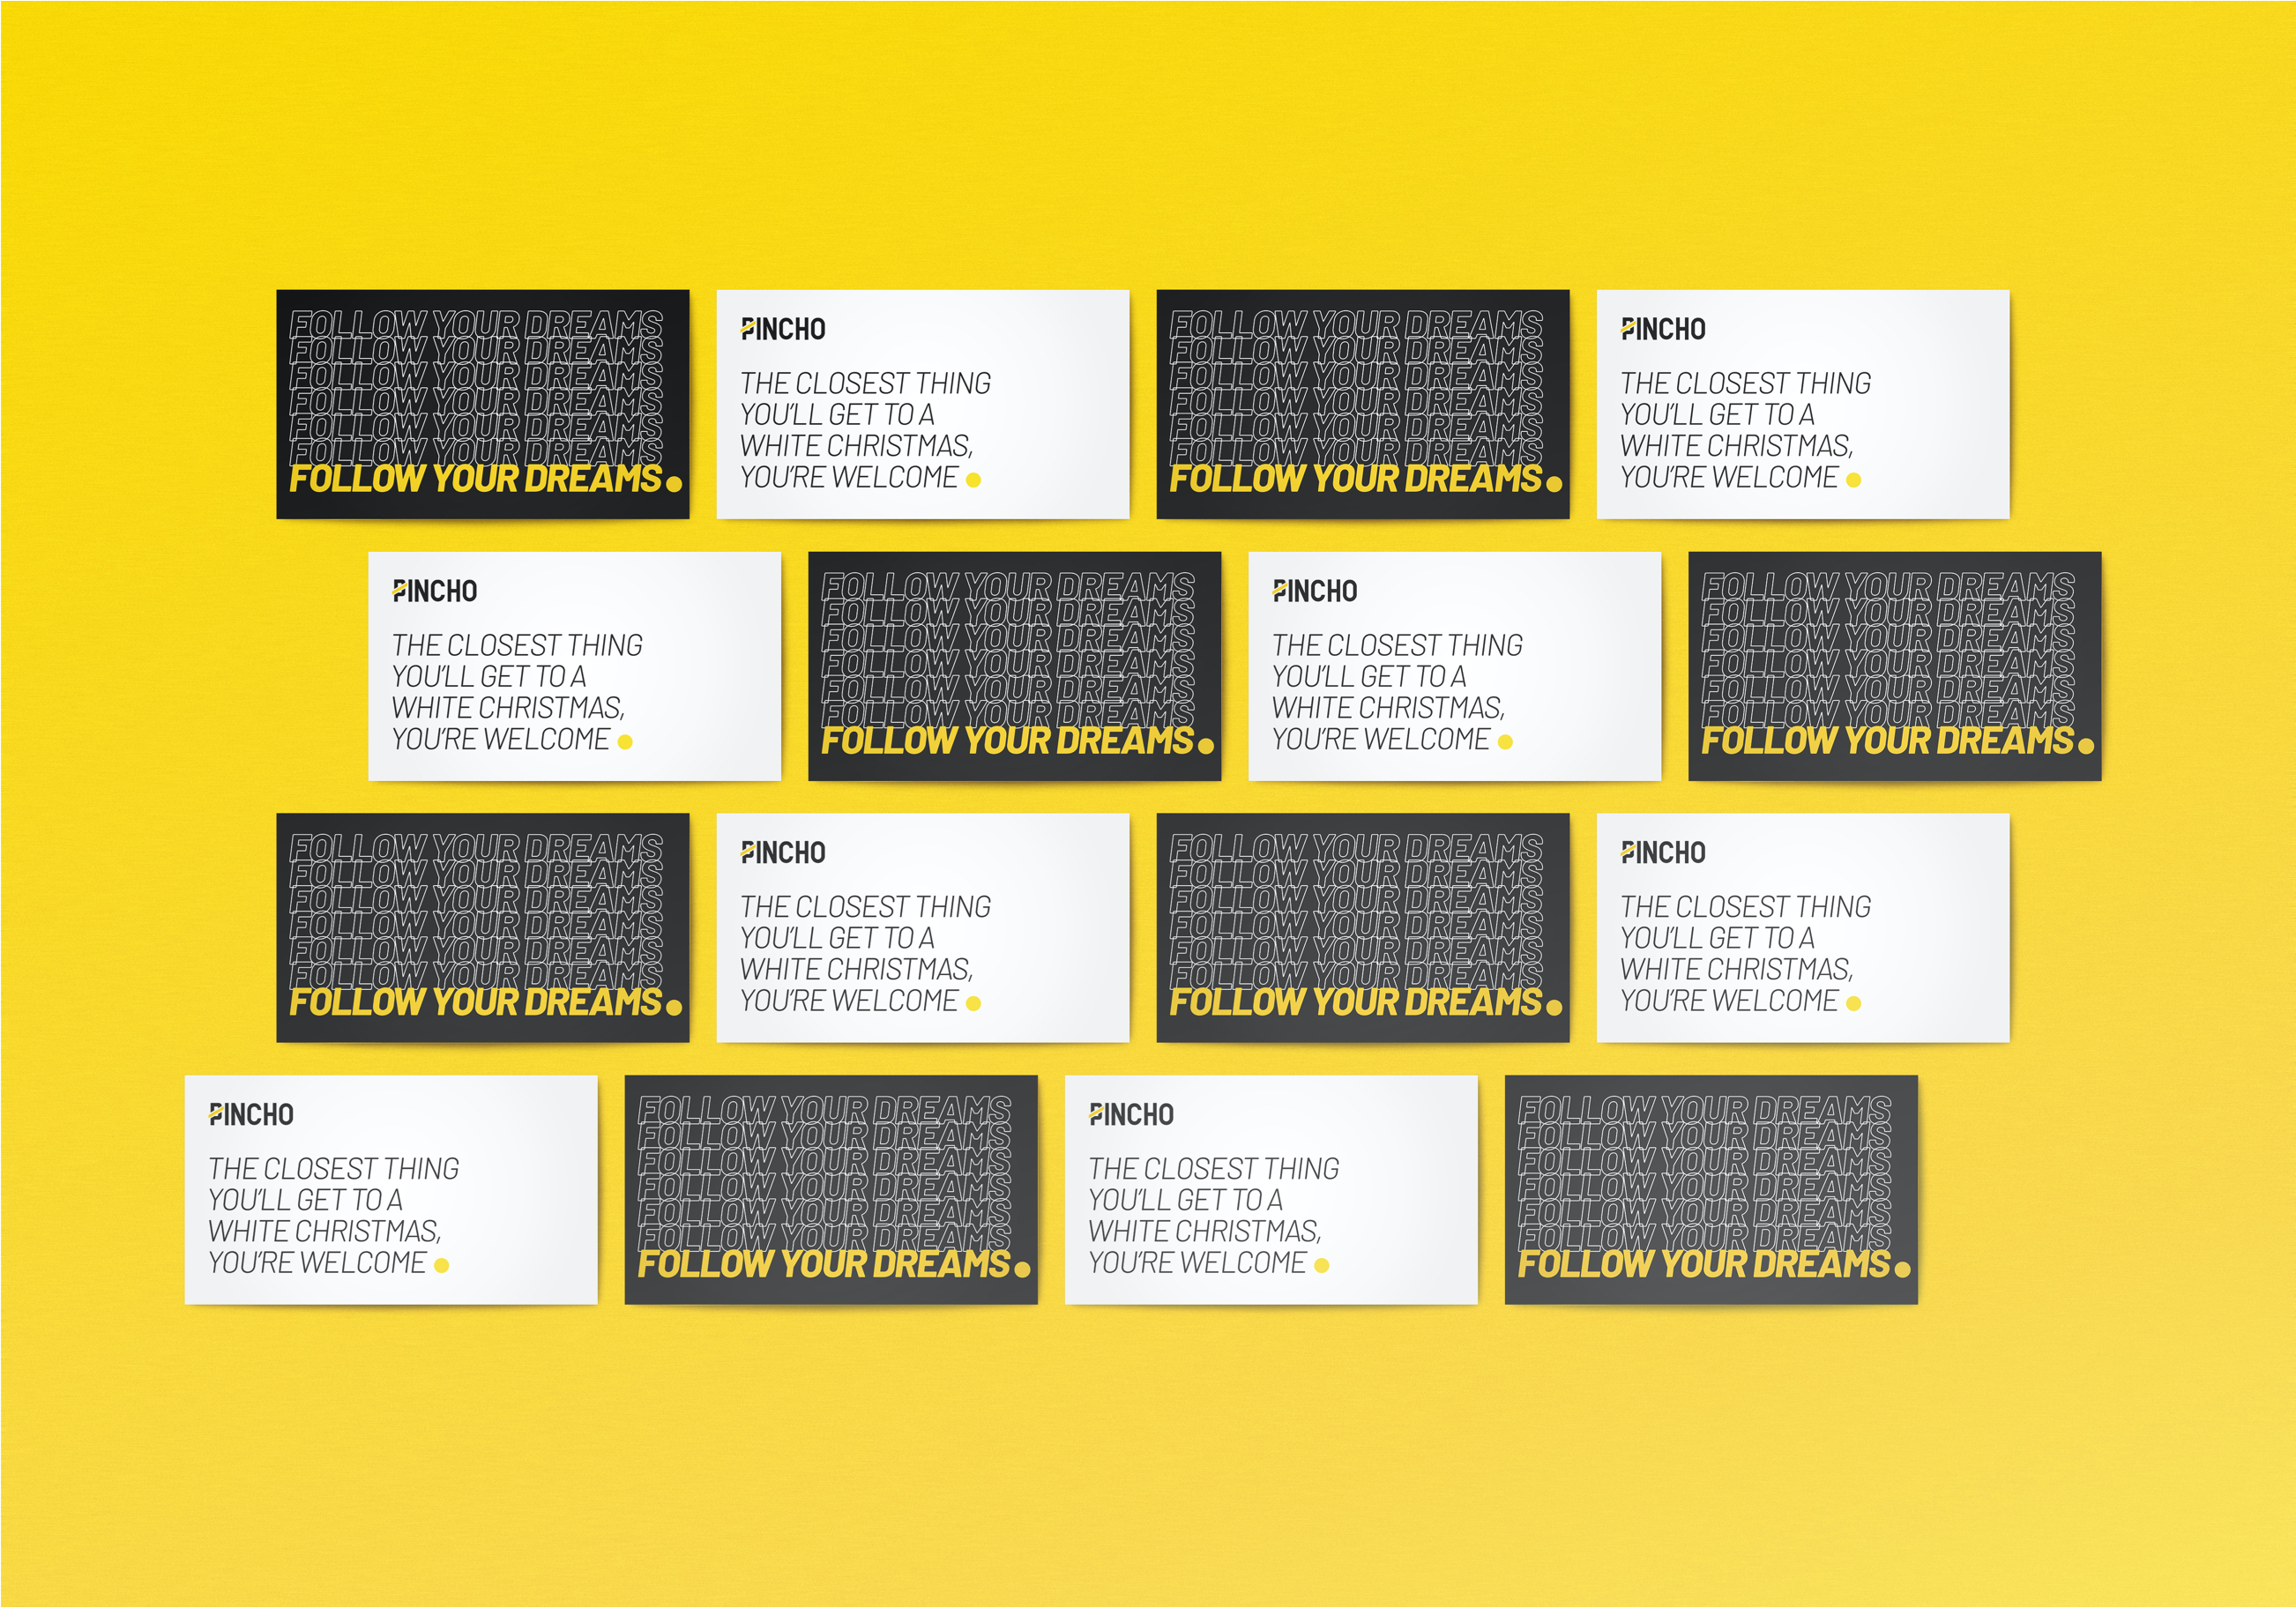 Business cards repeating on yellow background